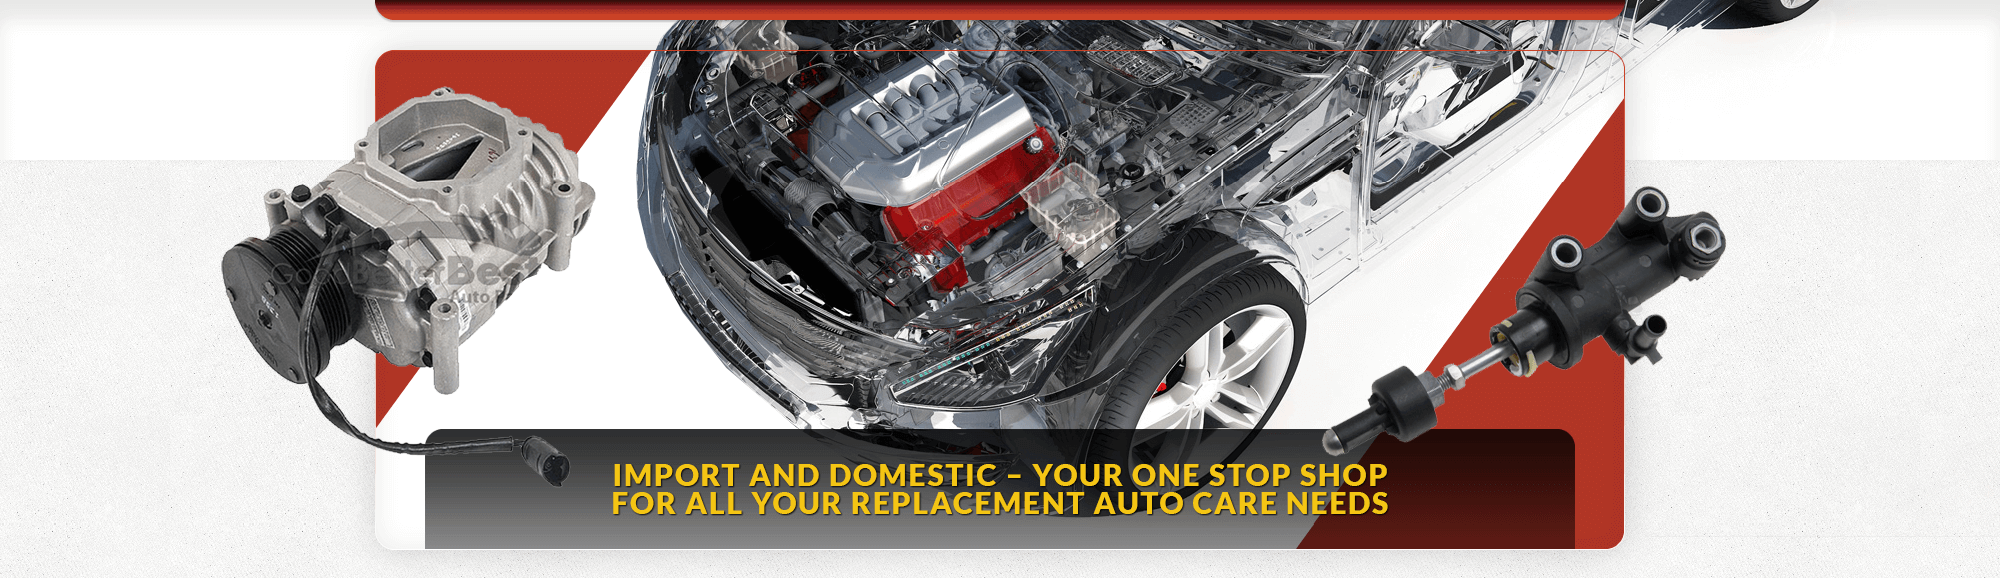 IMPORT AND DOMESTIC – YOUR ONE STOP SHOP FOR ALL YOUR REPLACEMENT AUTO CARE NEEDS